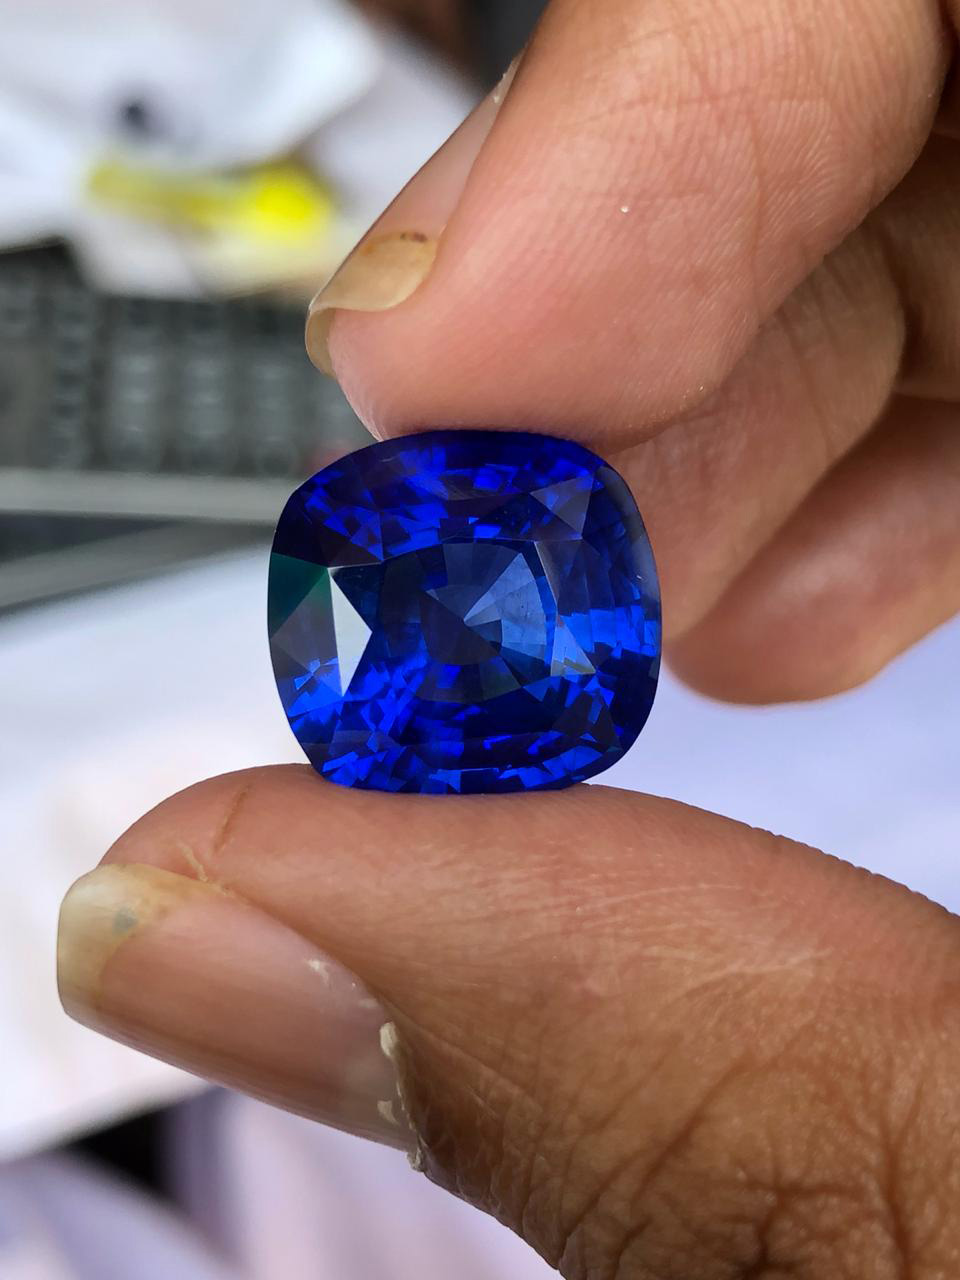 Right: The same sapphire after final polishing. Obviously, a paper clip could scratch the graphite crust, but it would have no impact on the sapphire after polishing.